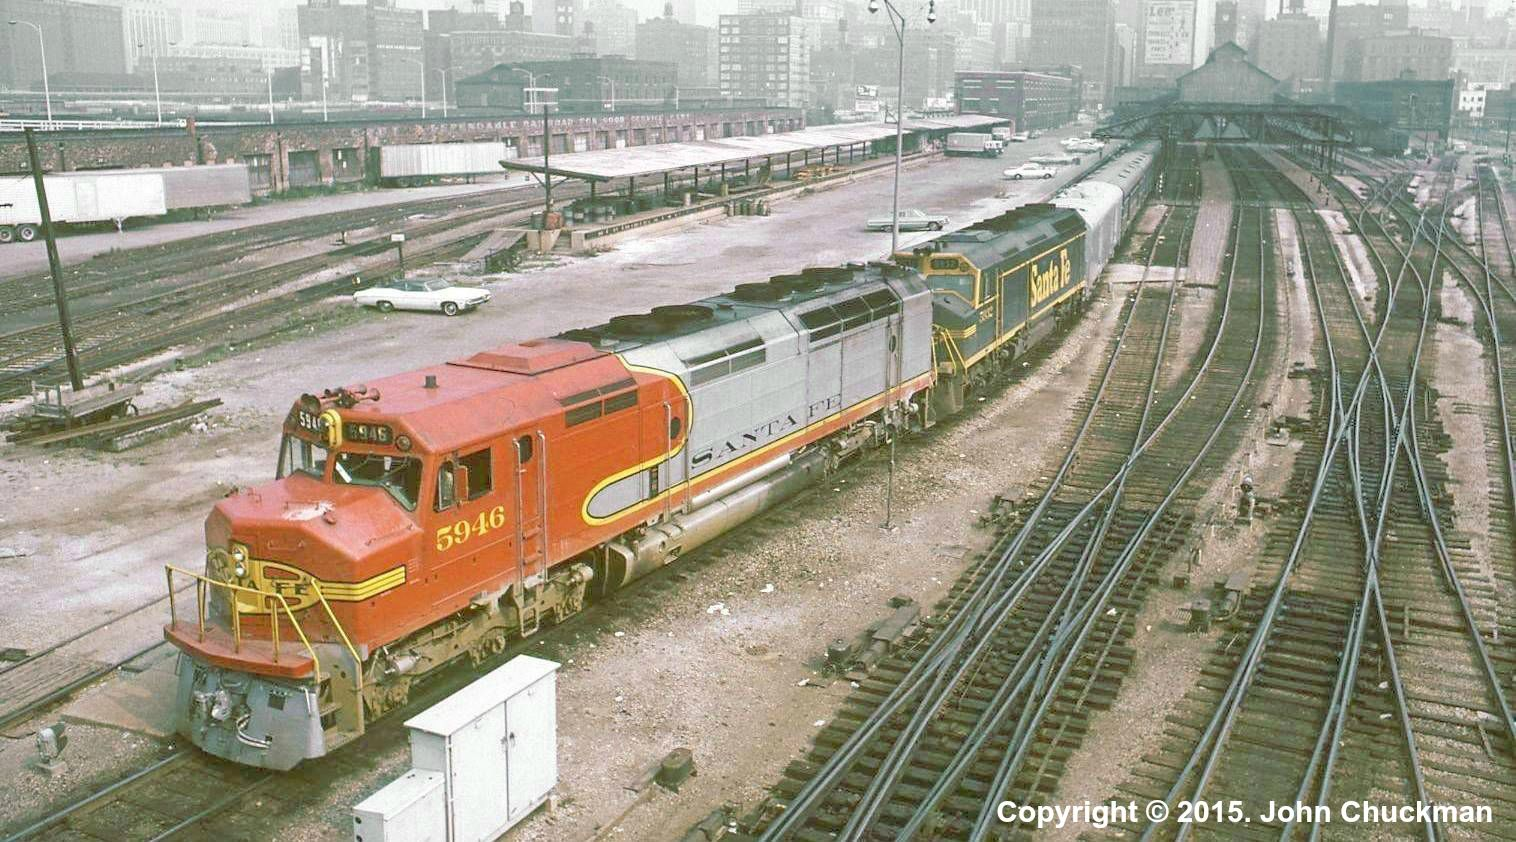 ATSF #5946 (EMD FP45) is shown leaving Dearborn Station with a passenger train in 1970. Photo by John Chuckman.